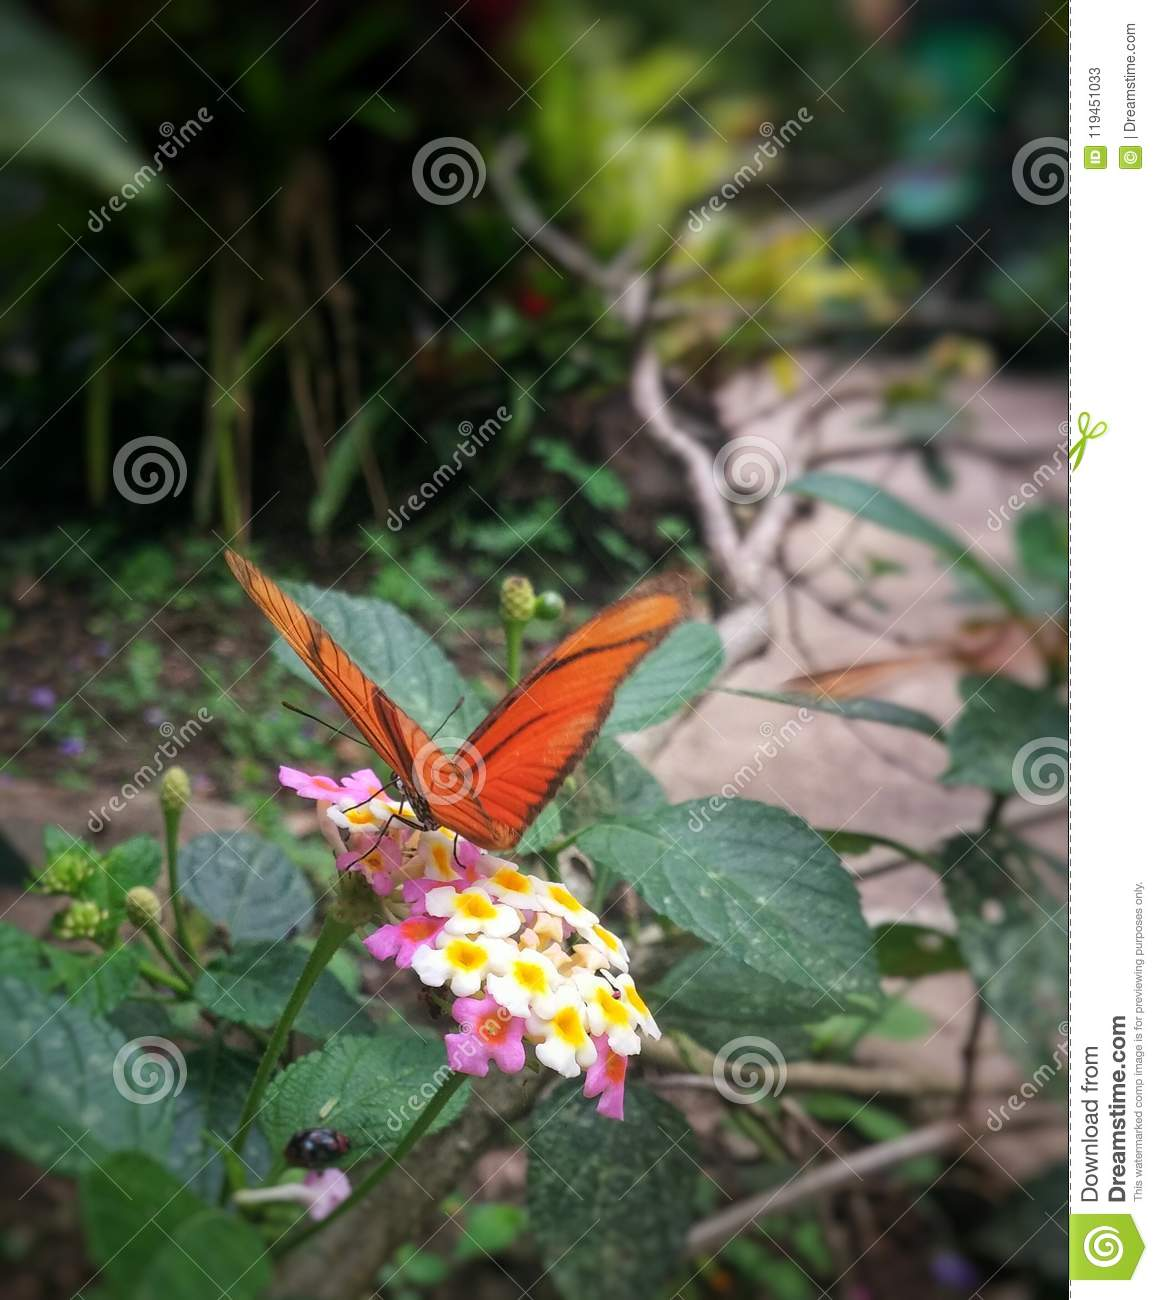 Orange Butterfly Perched On Small White And Pink Flowers Stock Image